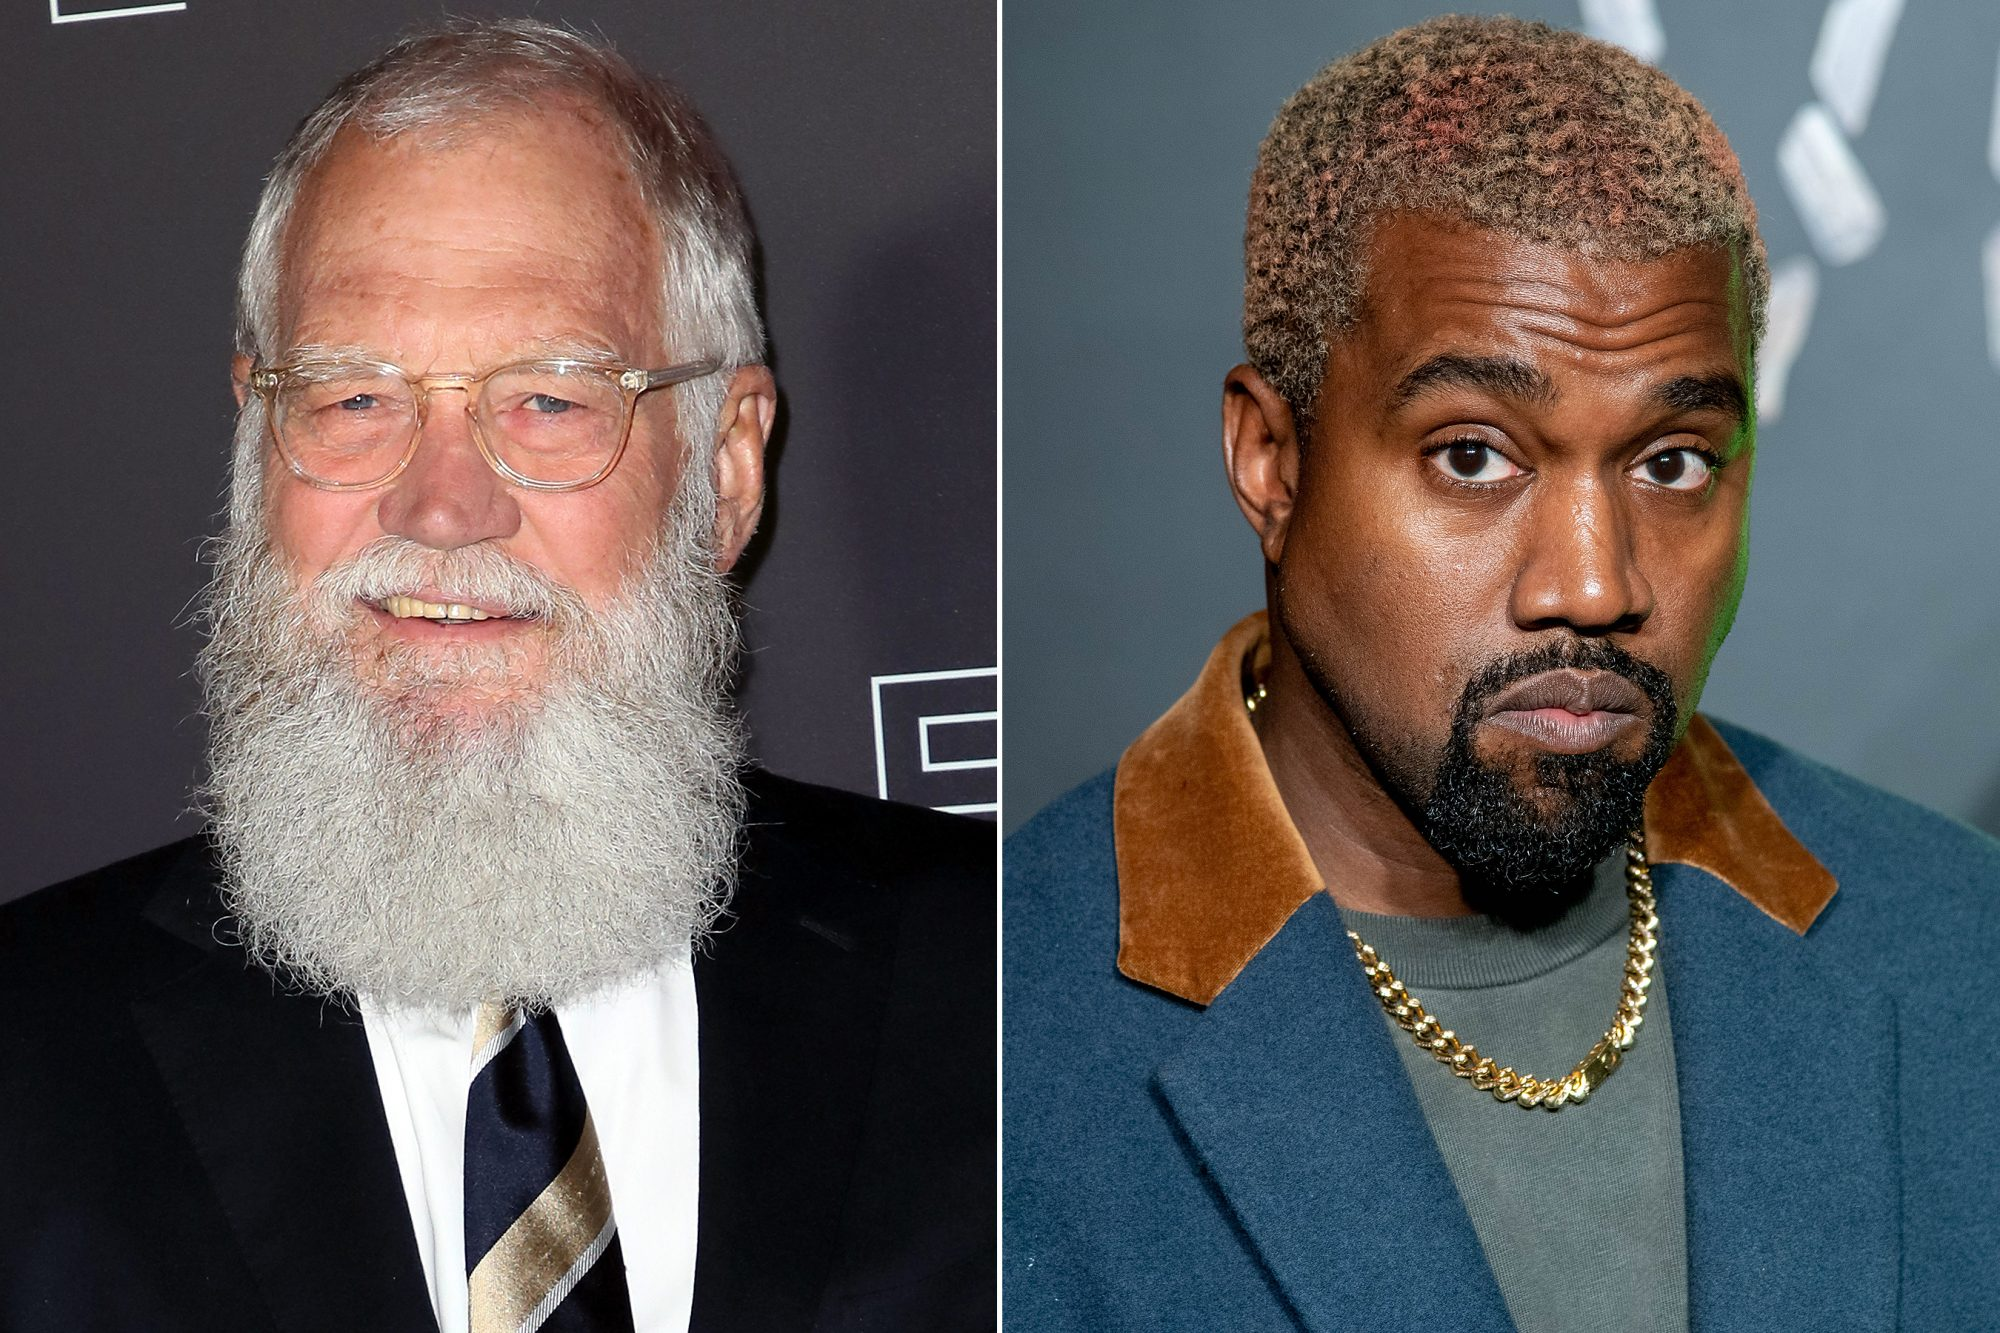 David Letterman, Kanye West